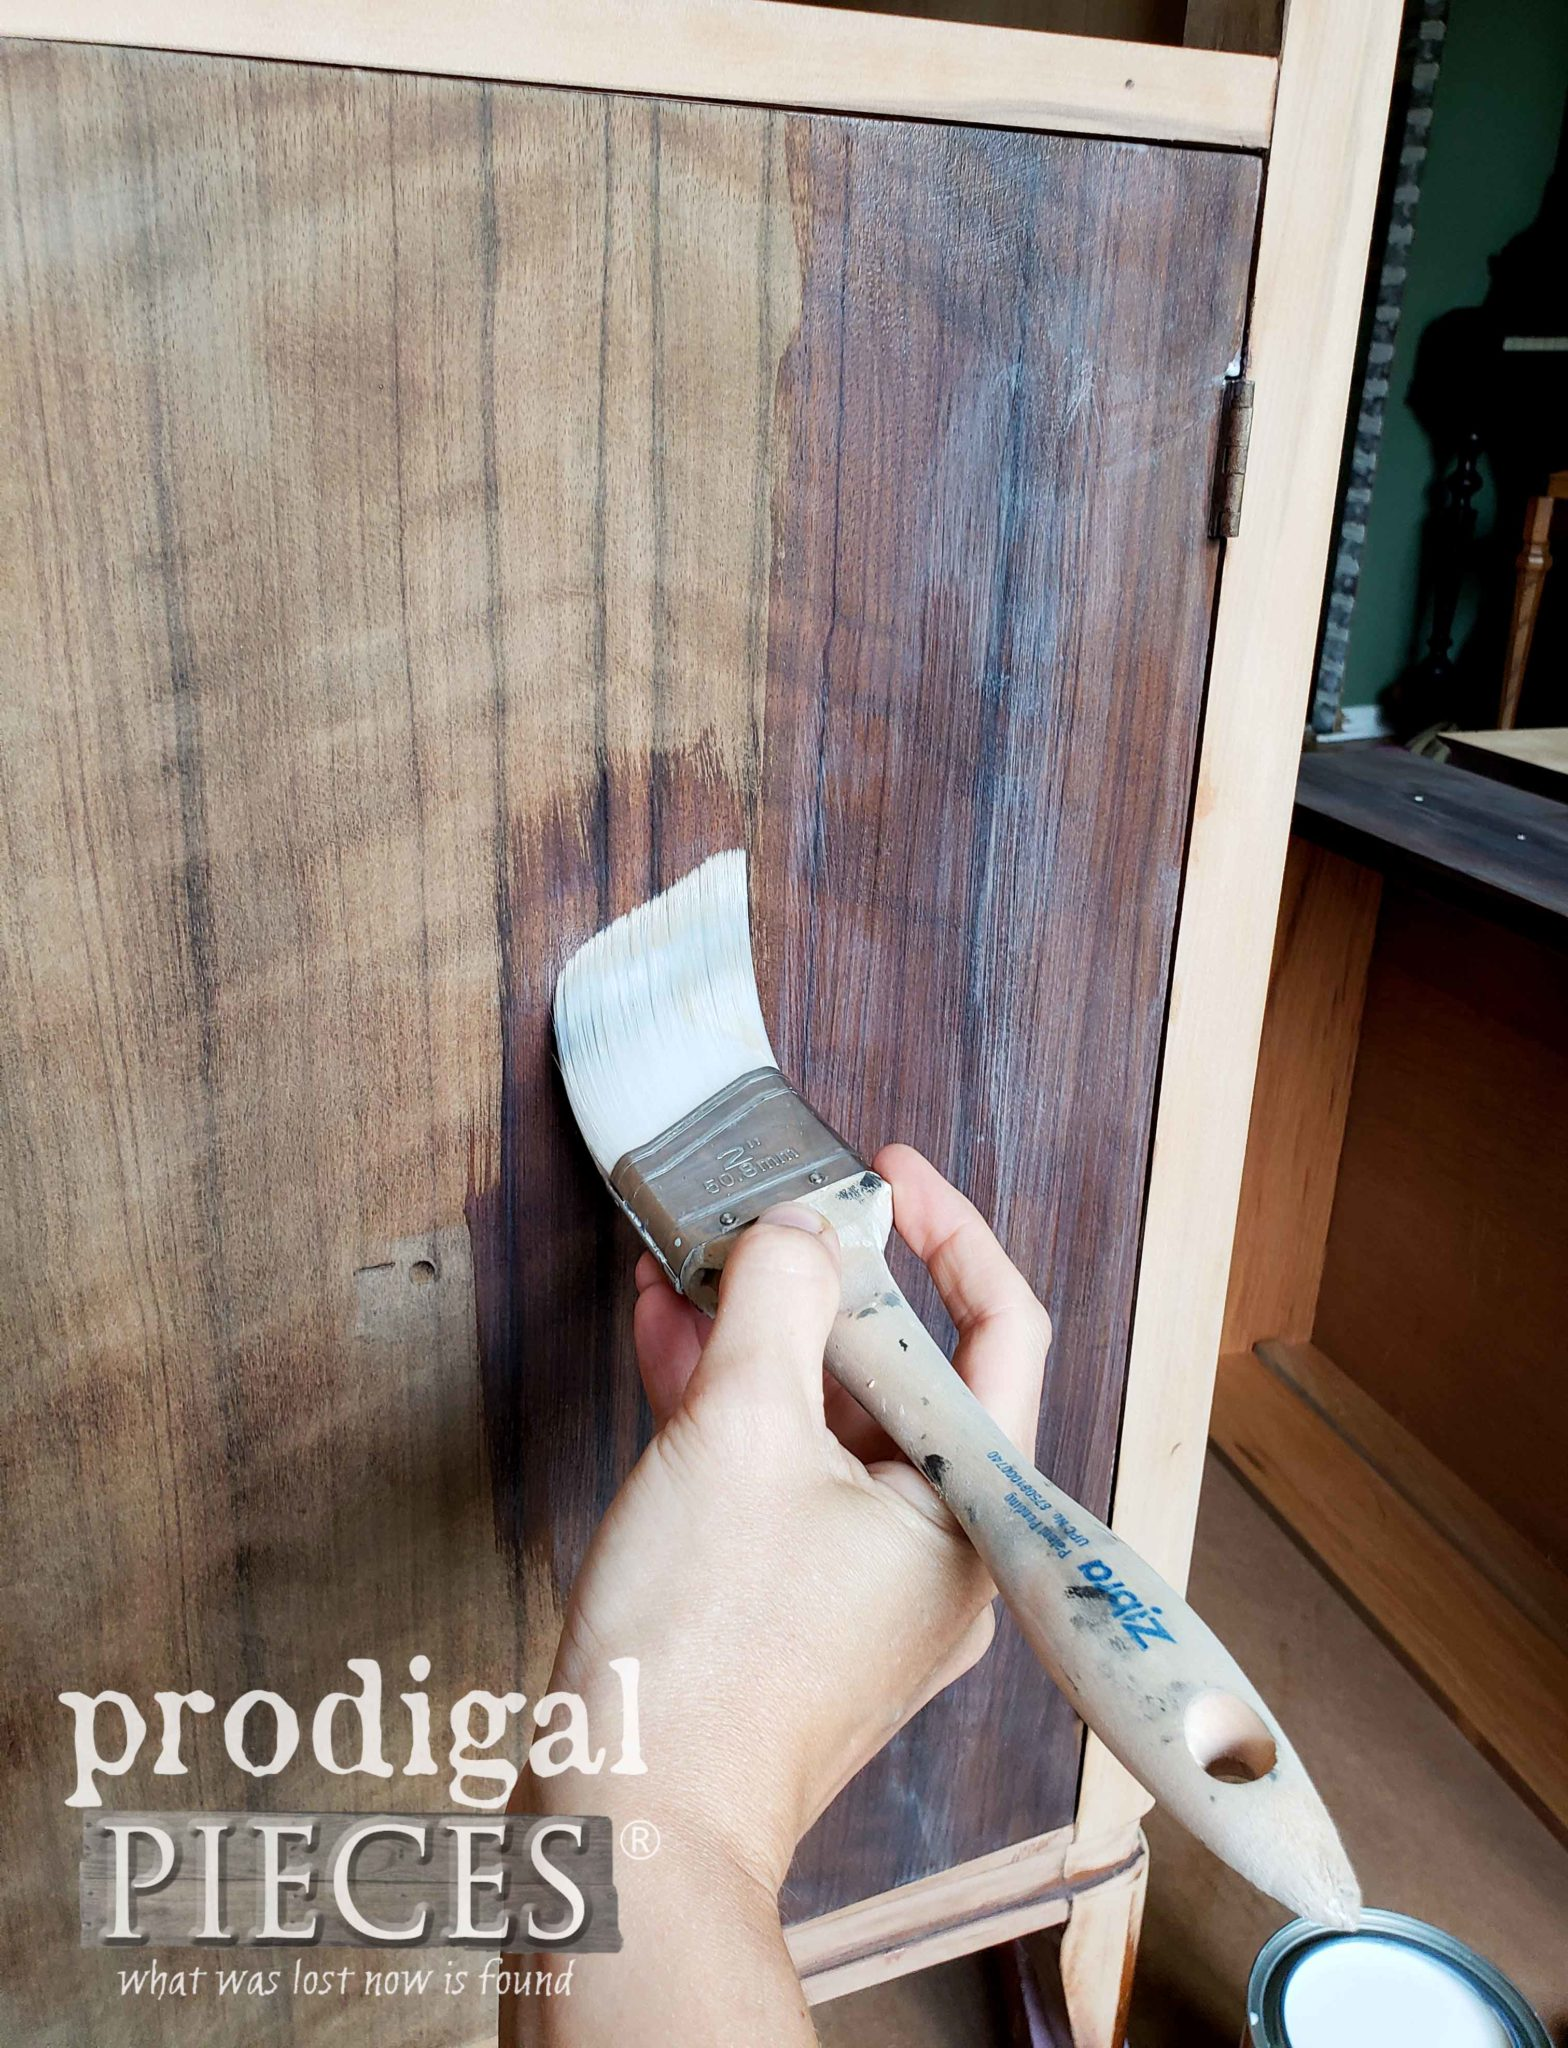 Zibra Angled Brush for Buffet Clear Coat | prodigalpieces.com